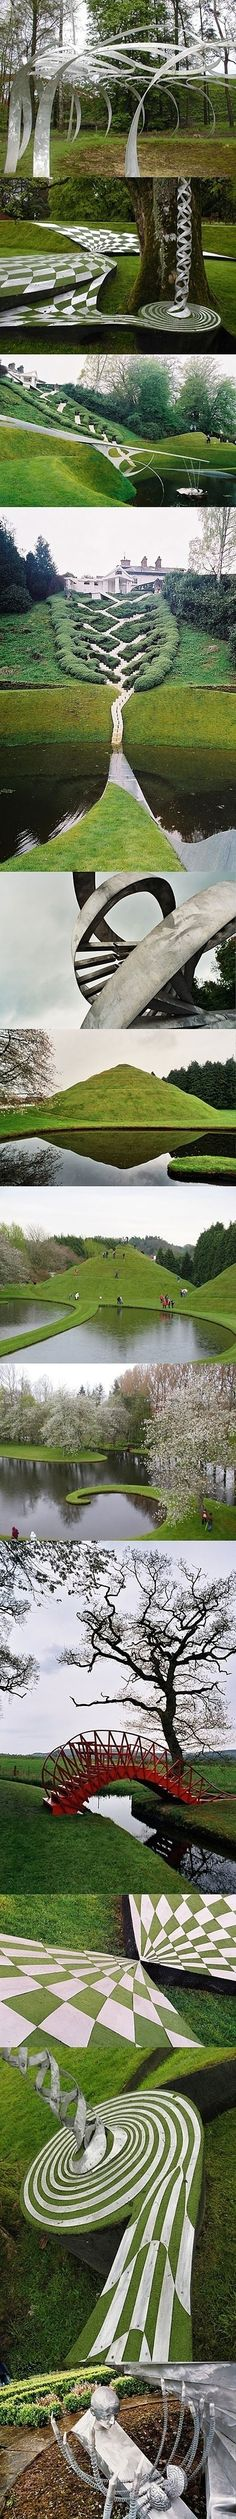 The Garden of Cosmic Speculation in Scotland. Would love to go here someday.